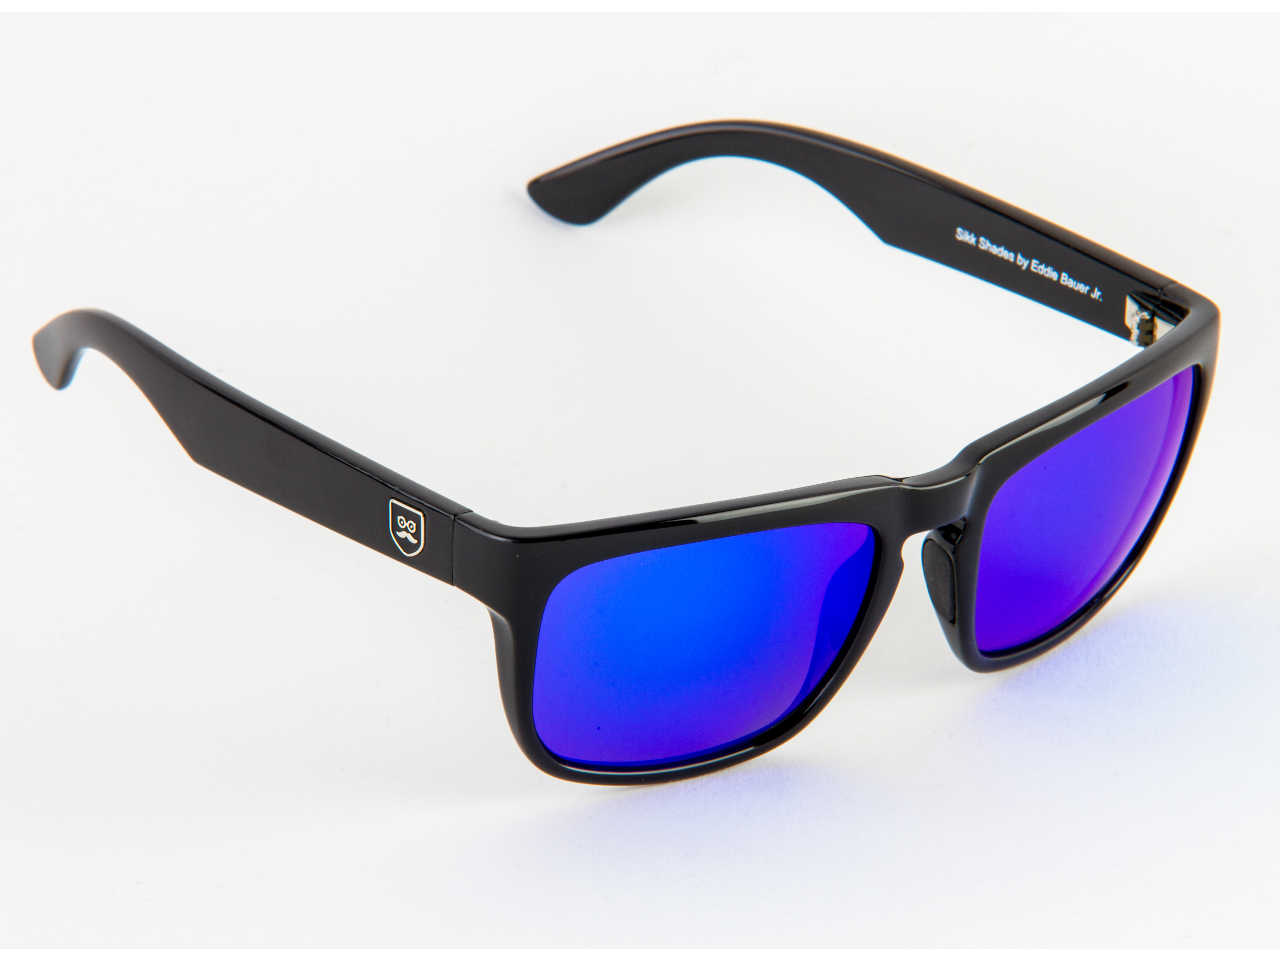 Sikk Shades By Eddie Bauer Jr Joins MX Sponsor Accepting